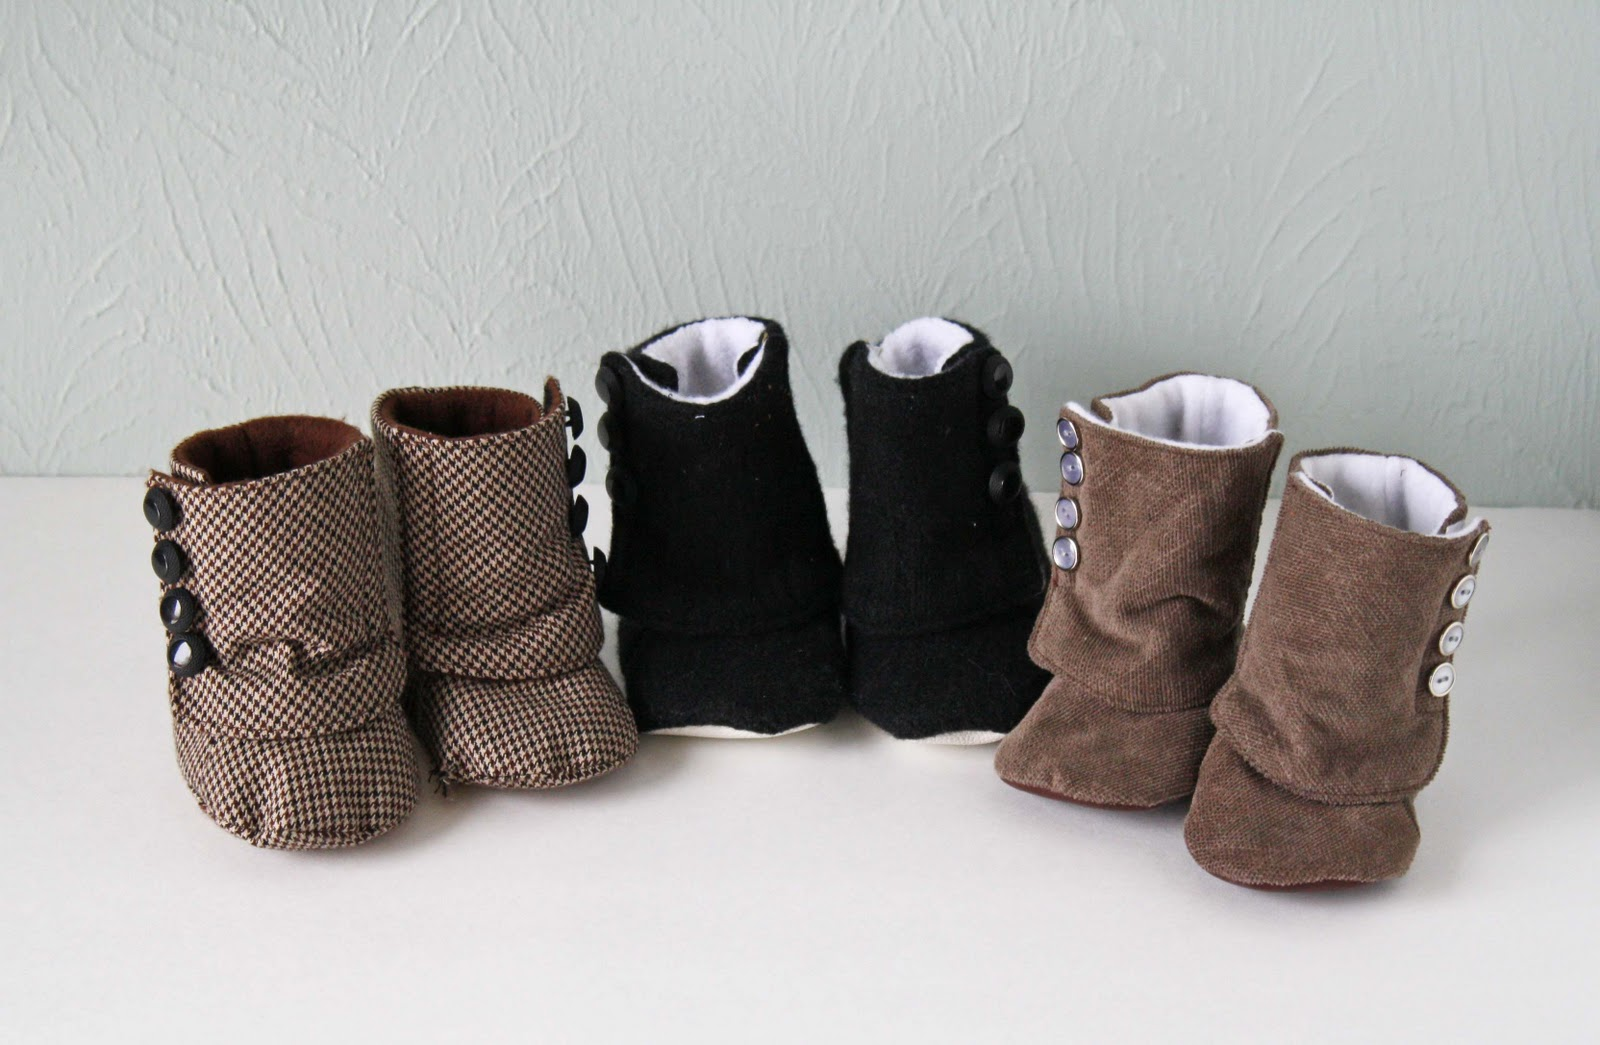 I've rounded up 8 different tutorials to make your own baby shoes. The free DIY tutorials include everything from darling ballet shoes to sandals to traditional booties. Any of these would make.